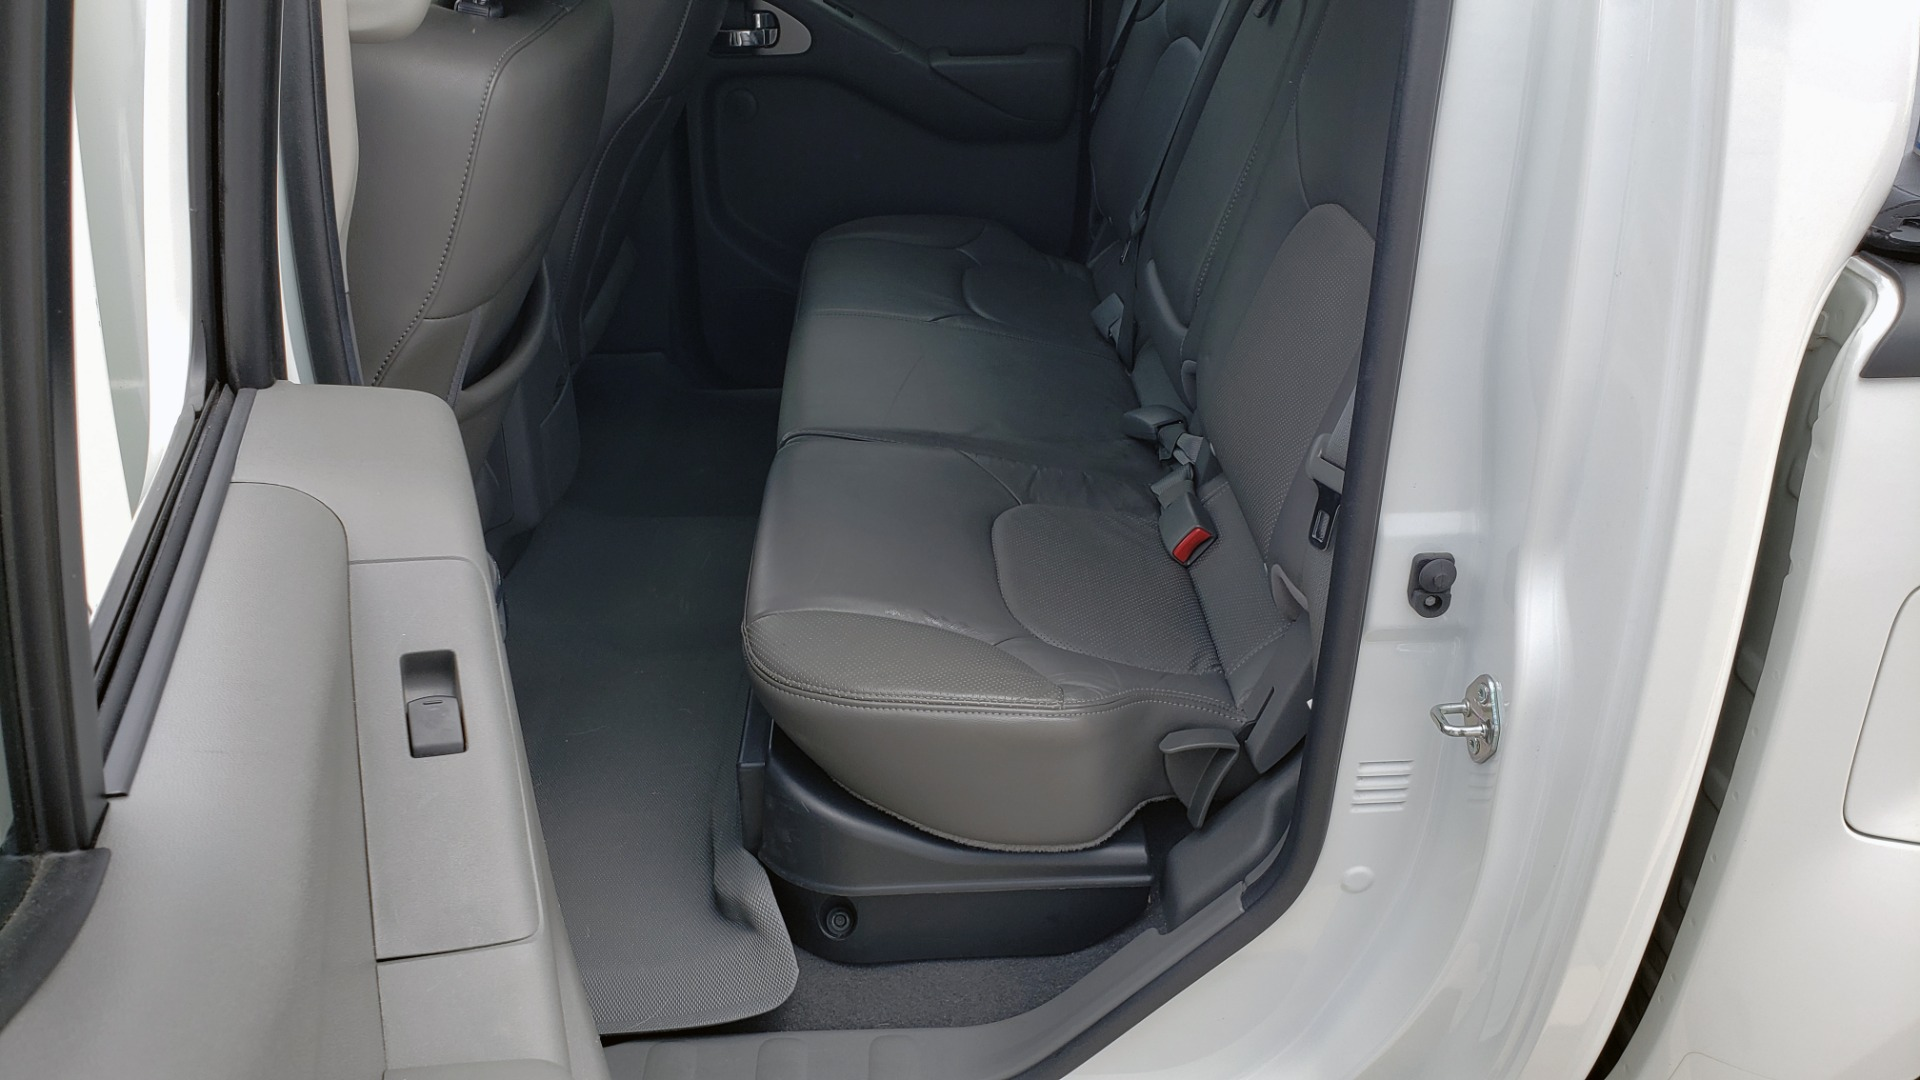 Used 2019 Nissan FRONTIER SL CREW CAB / 4X4 / NAV / SUNROOF / ROCKFORD FOSGATE / LOADED for sale $31,495 at Formula Imports in Charlotte NC 28227 56